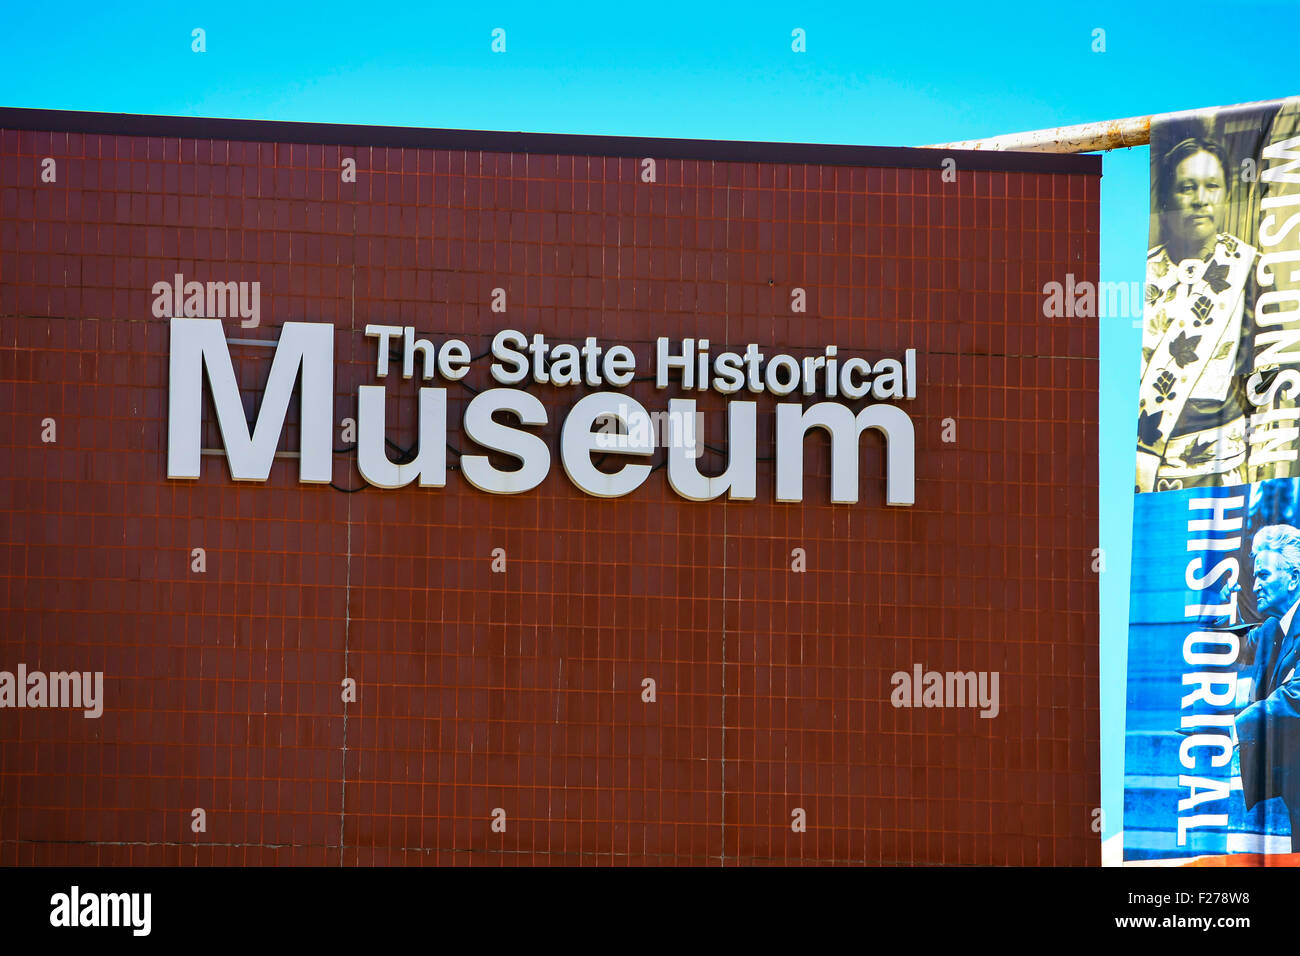 The State Historical Museum sign on the wall of the building in downtown Madison, Wisconsin - Stock Image